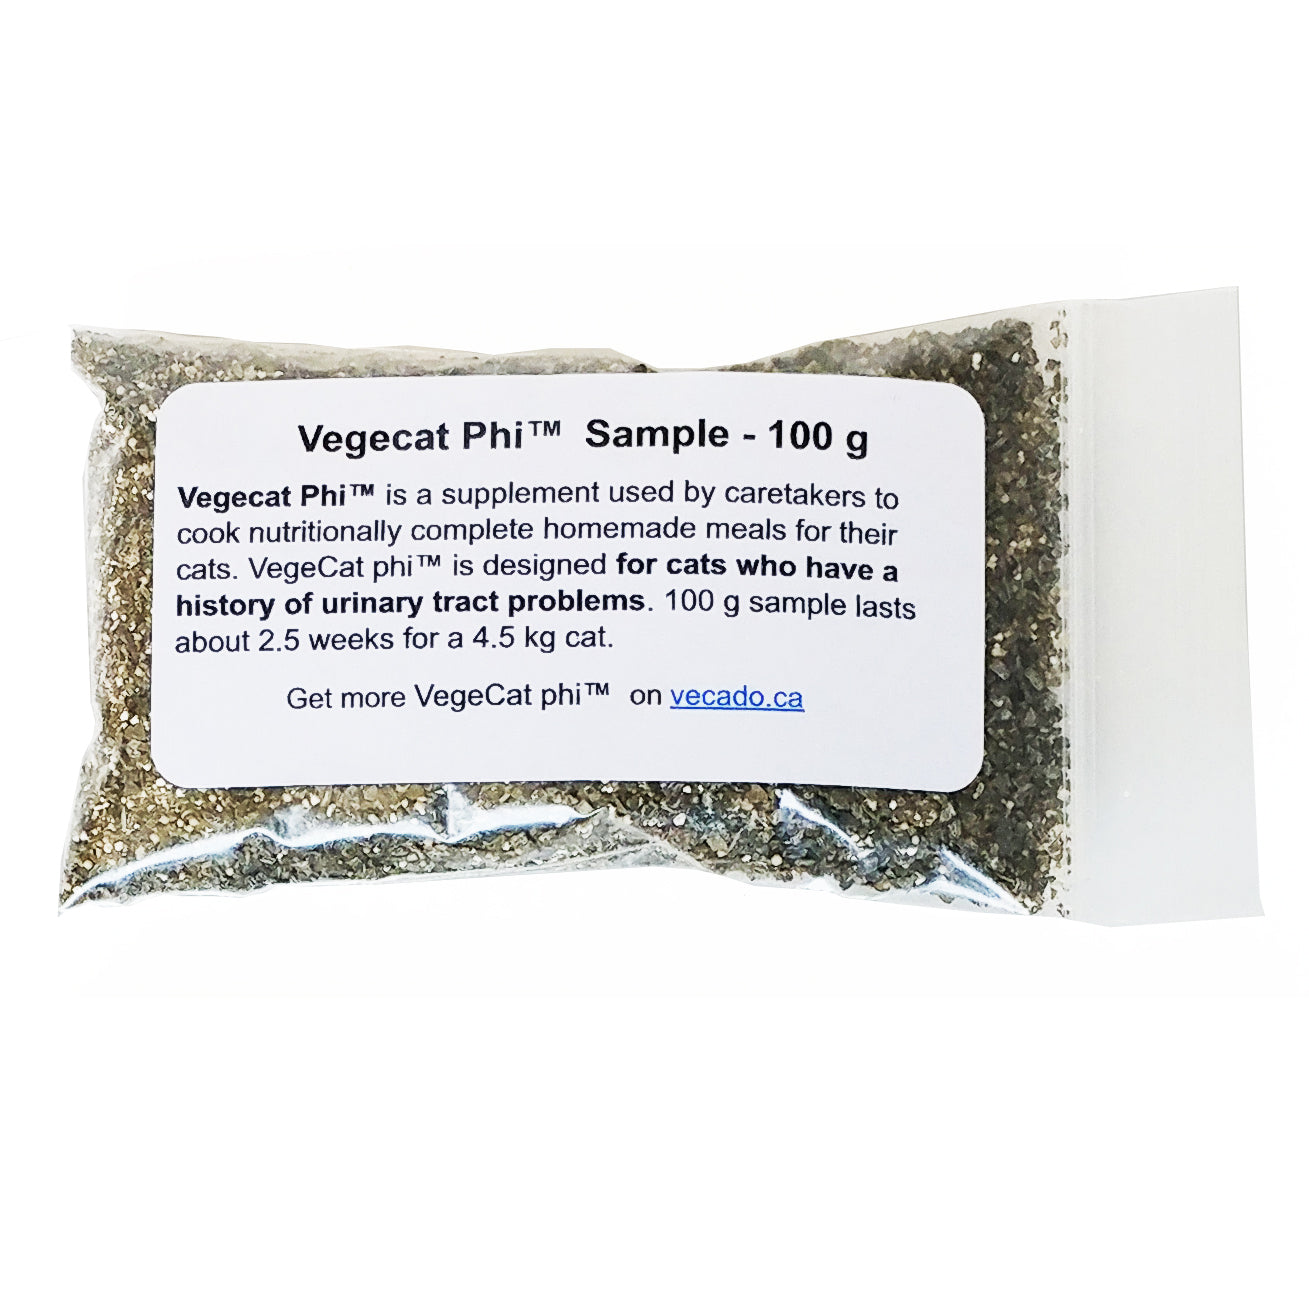 VegeCat phi Supplement